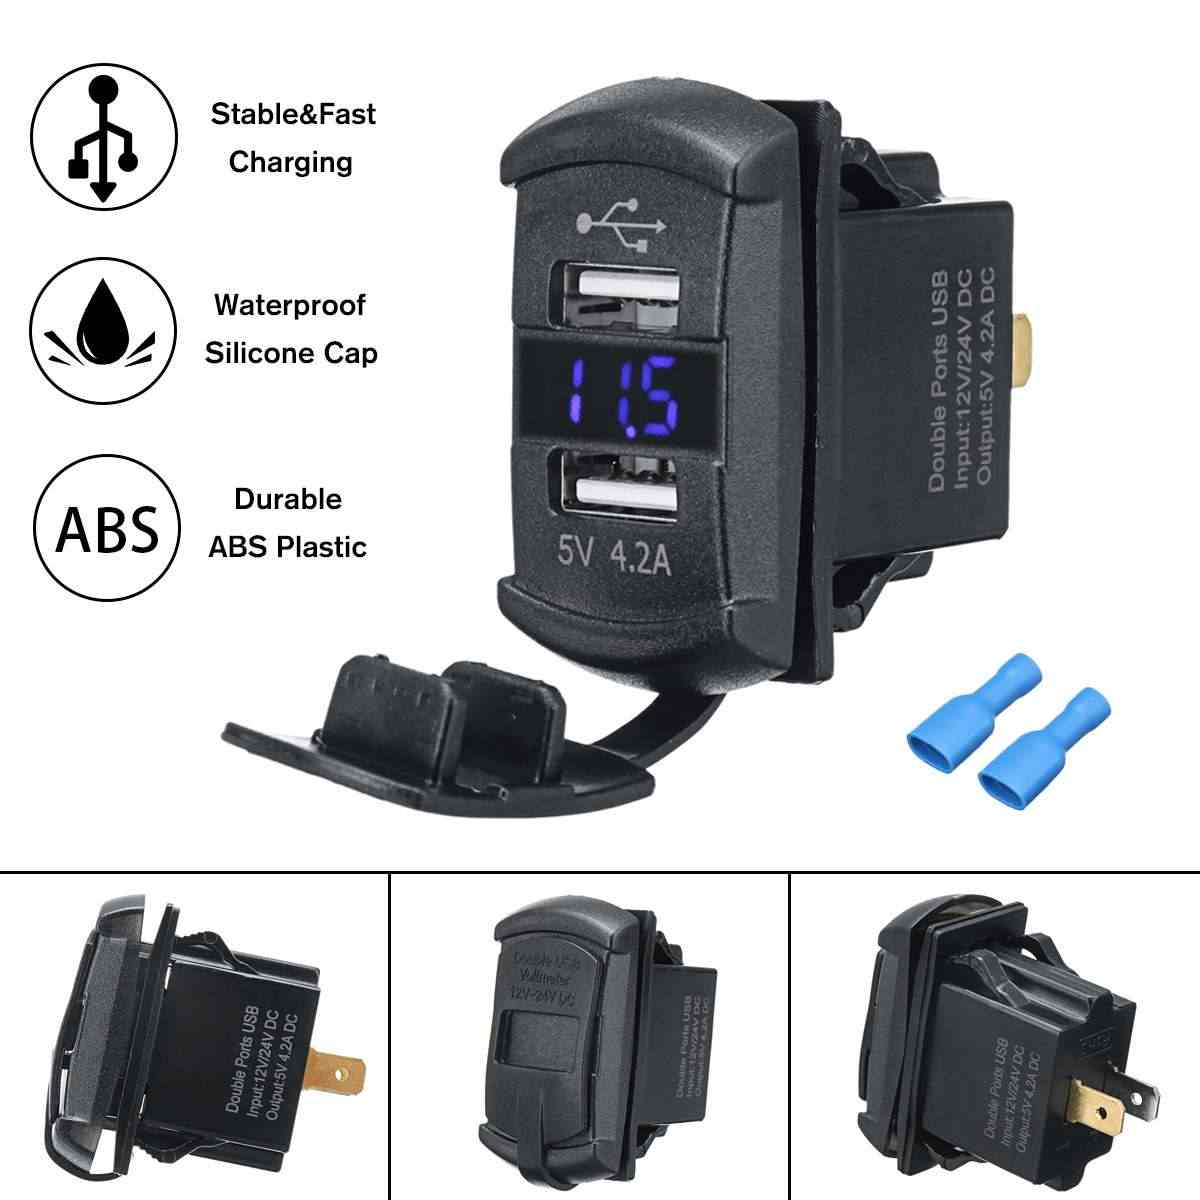 12 V Biru/Merah LED USB Charger Backlit Rocker Switch untuk Polaris Rzr Ranger 900 1000 RZR900 Voltmeter Digital biru Lampu LED